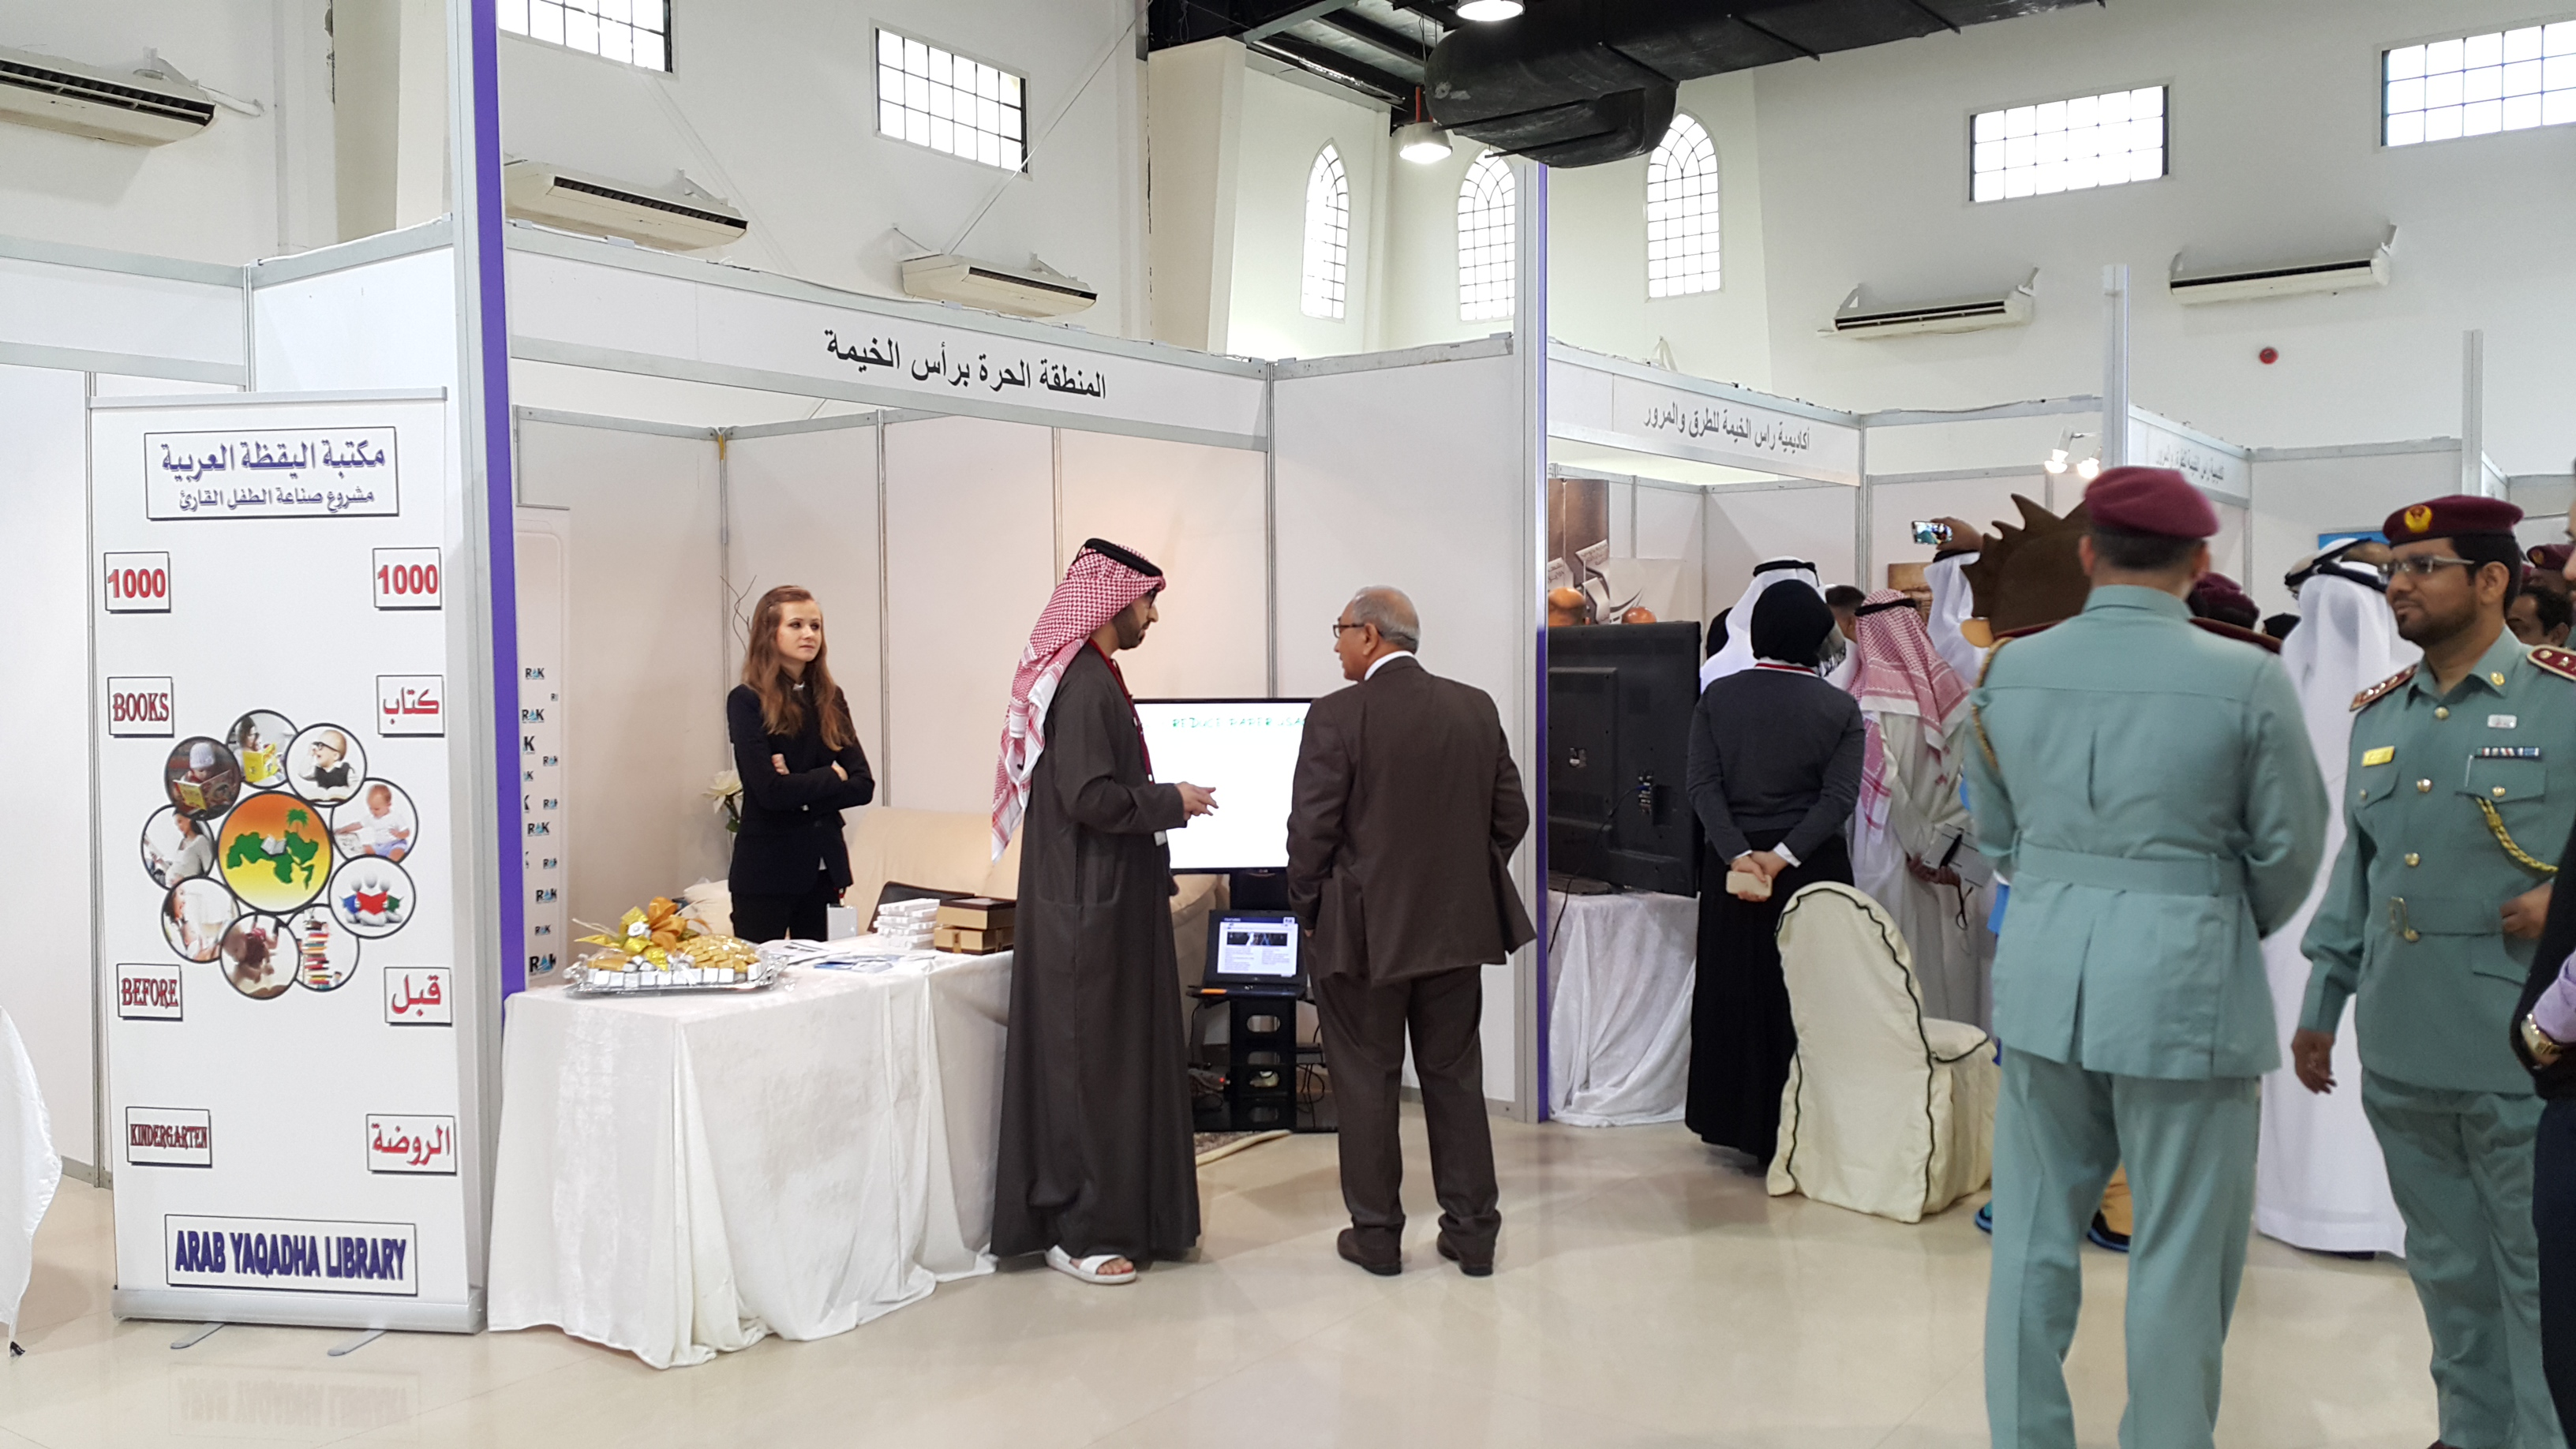 imgRAK FTZ participates in the Creativity and Innovation Exhibition